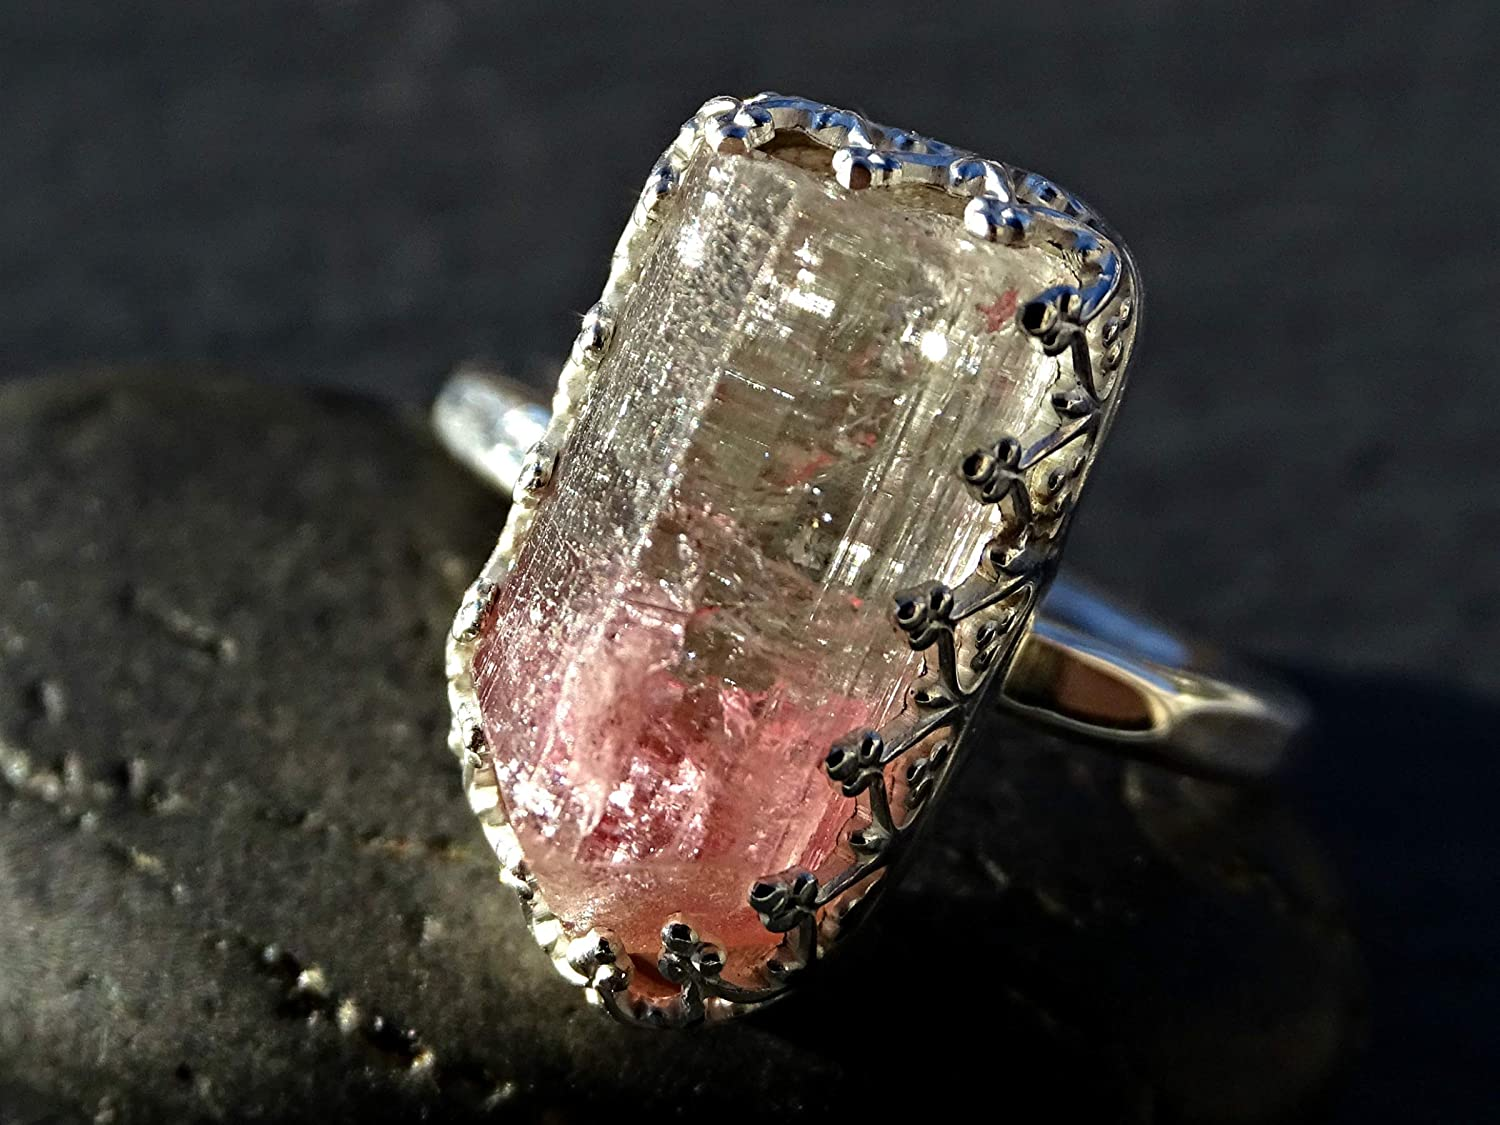 Silver Ring Dainty Ring Coffin Watermelon Tourmaline Quartz Ring in 925 Sterling Silver Jewelry Gemstone Ring Boho Ring Silver Ring